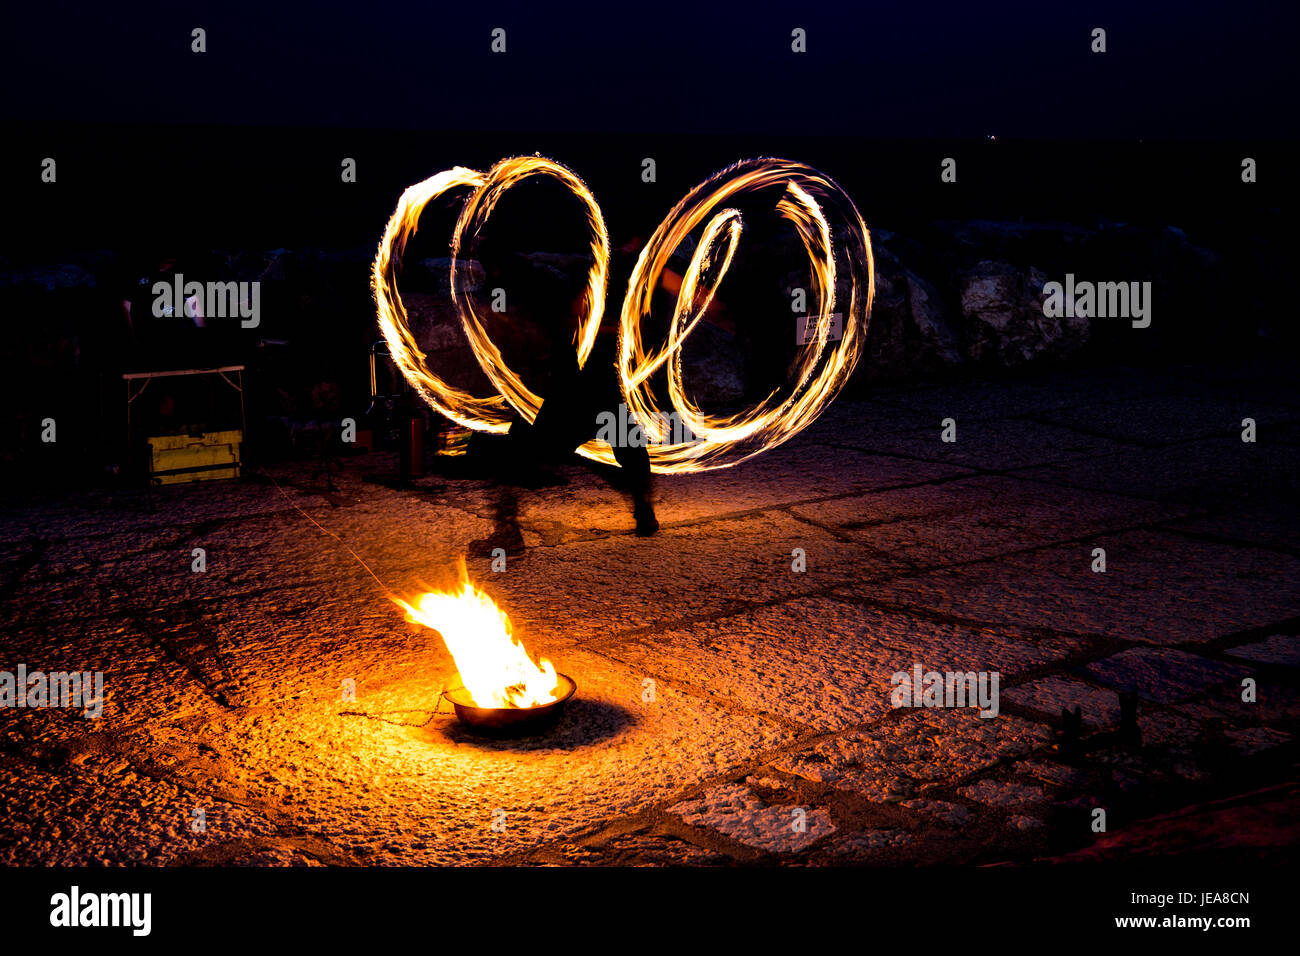 Street artist with a burning stick during his dangerous fire show - Stock Image